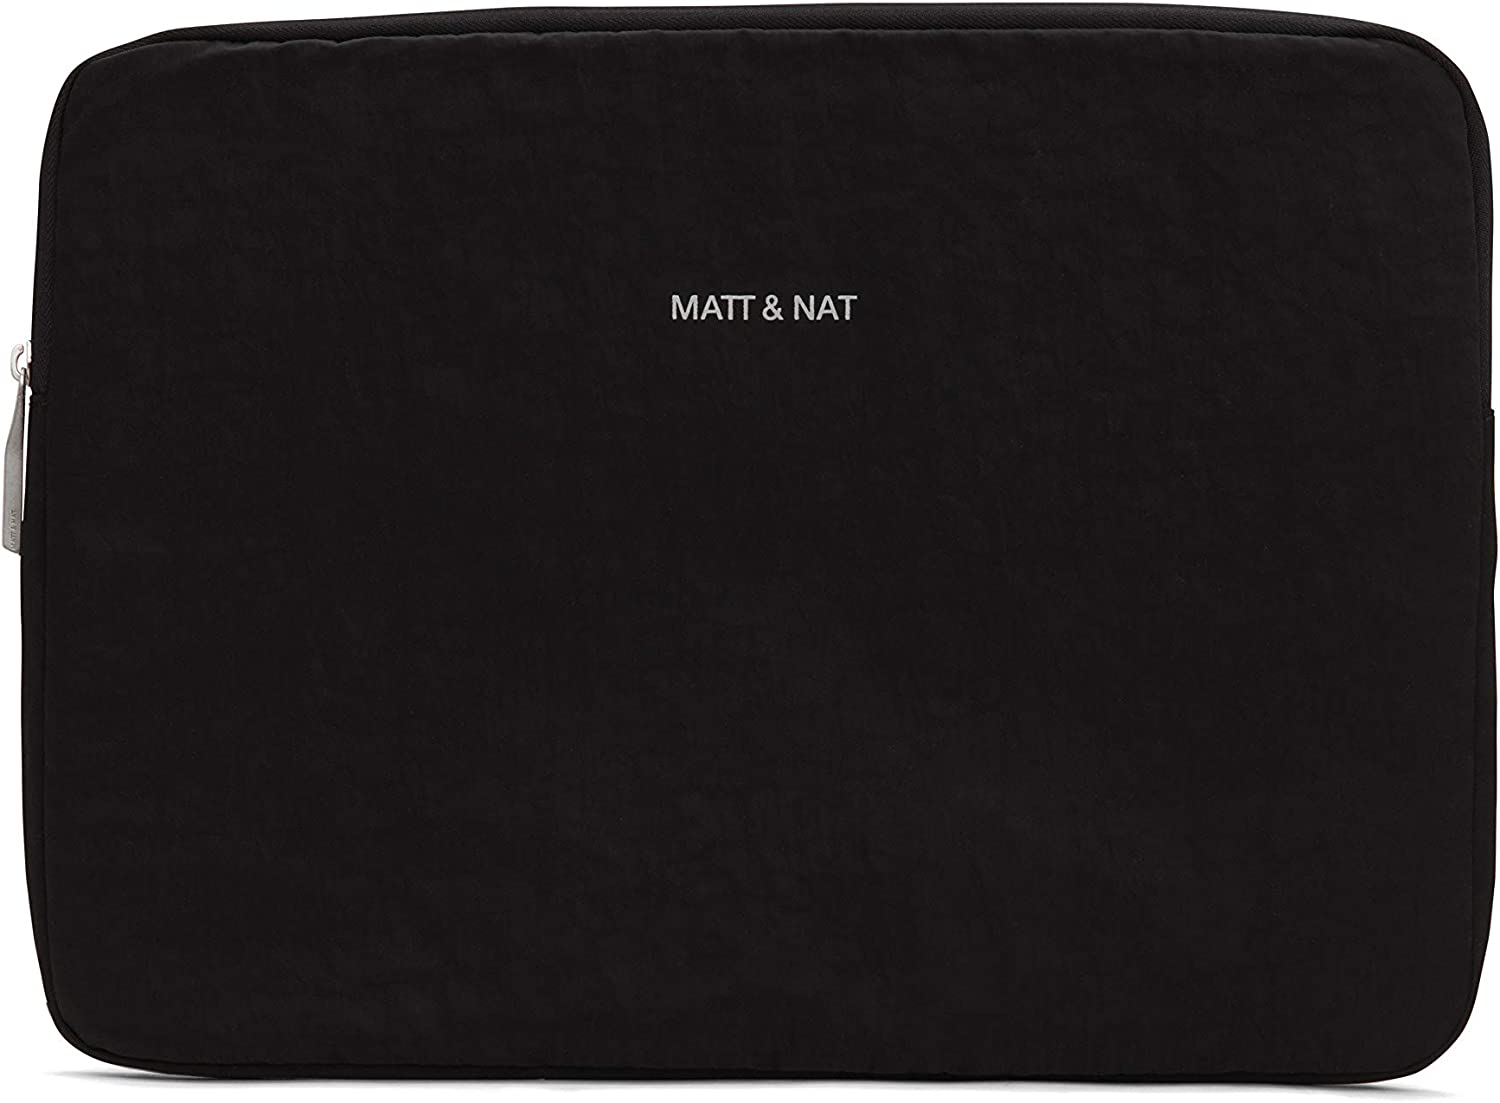 Matt /& Nat Kehl 13 Inch Laptop Sleeve Black